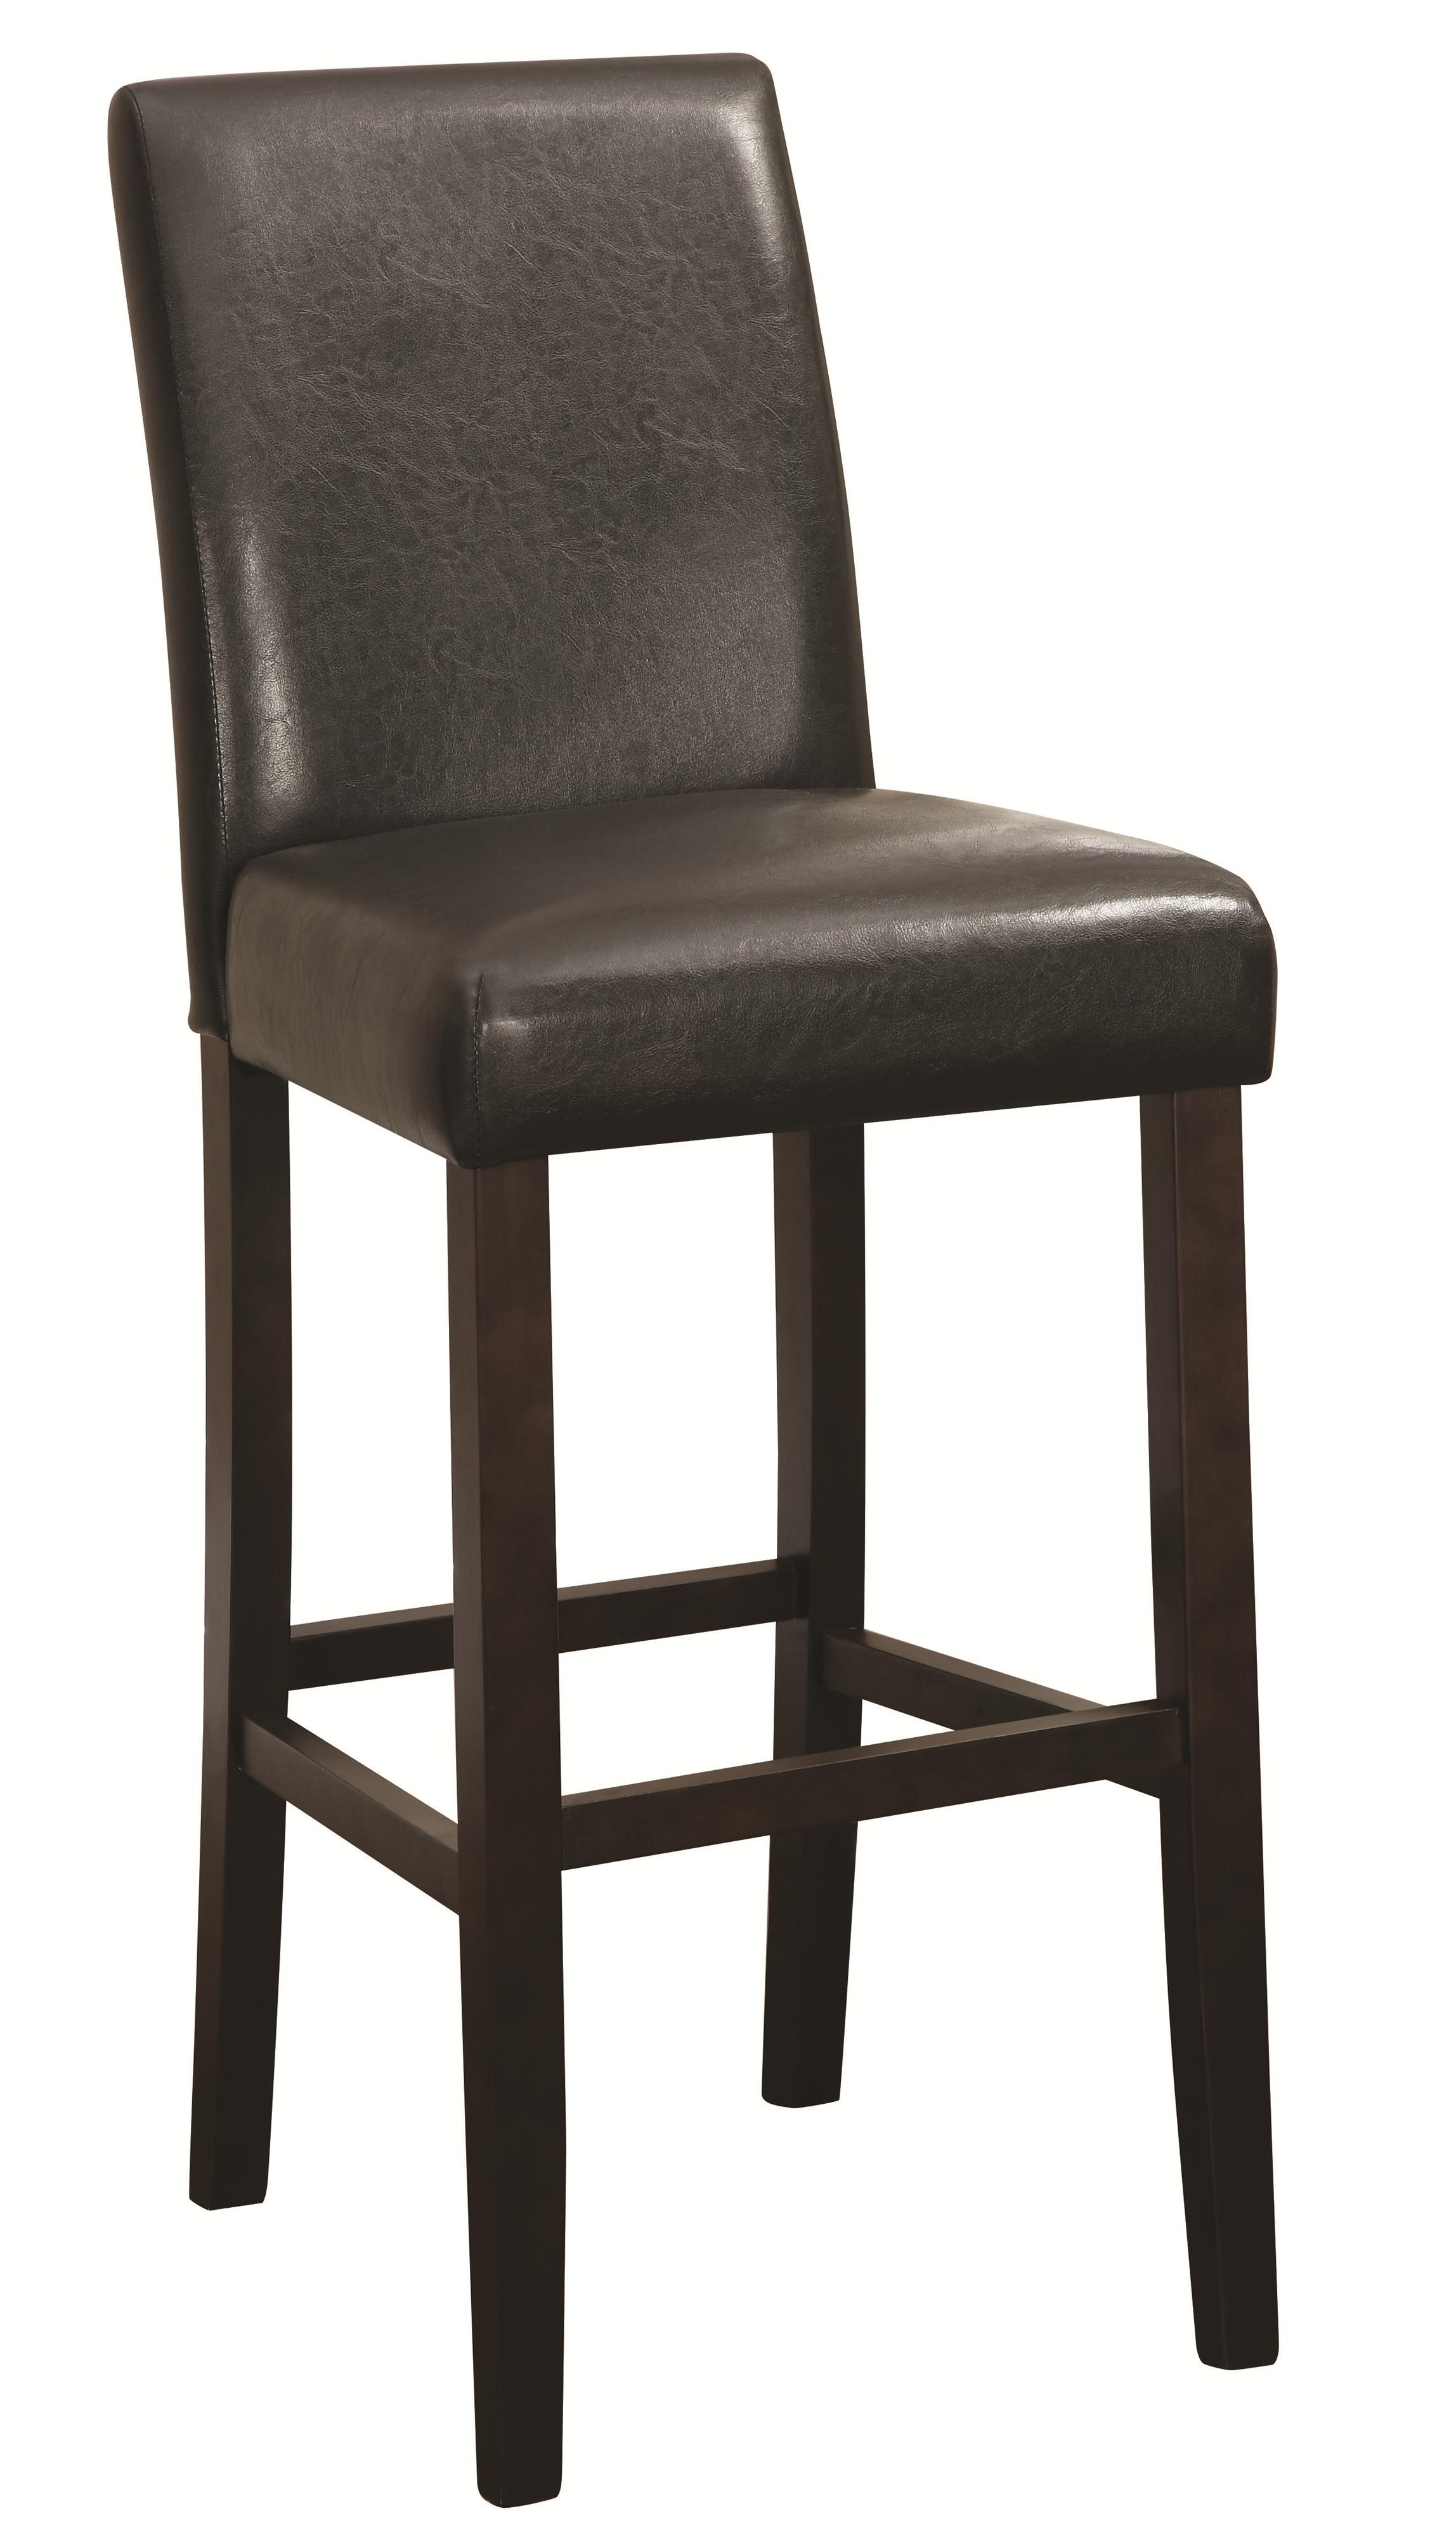 Accent Seating Bar Height Stool by Coaster at Lapeer Furniture & Mattress Center